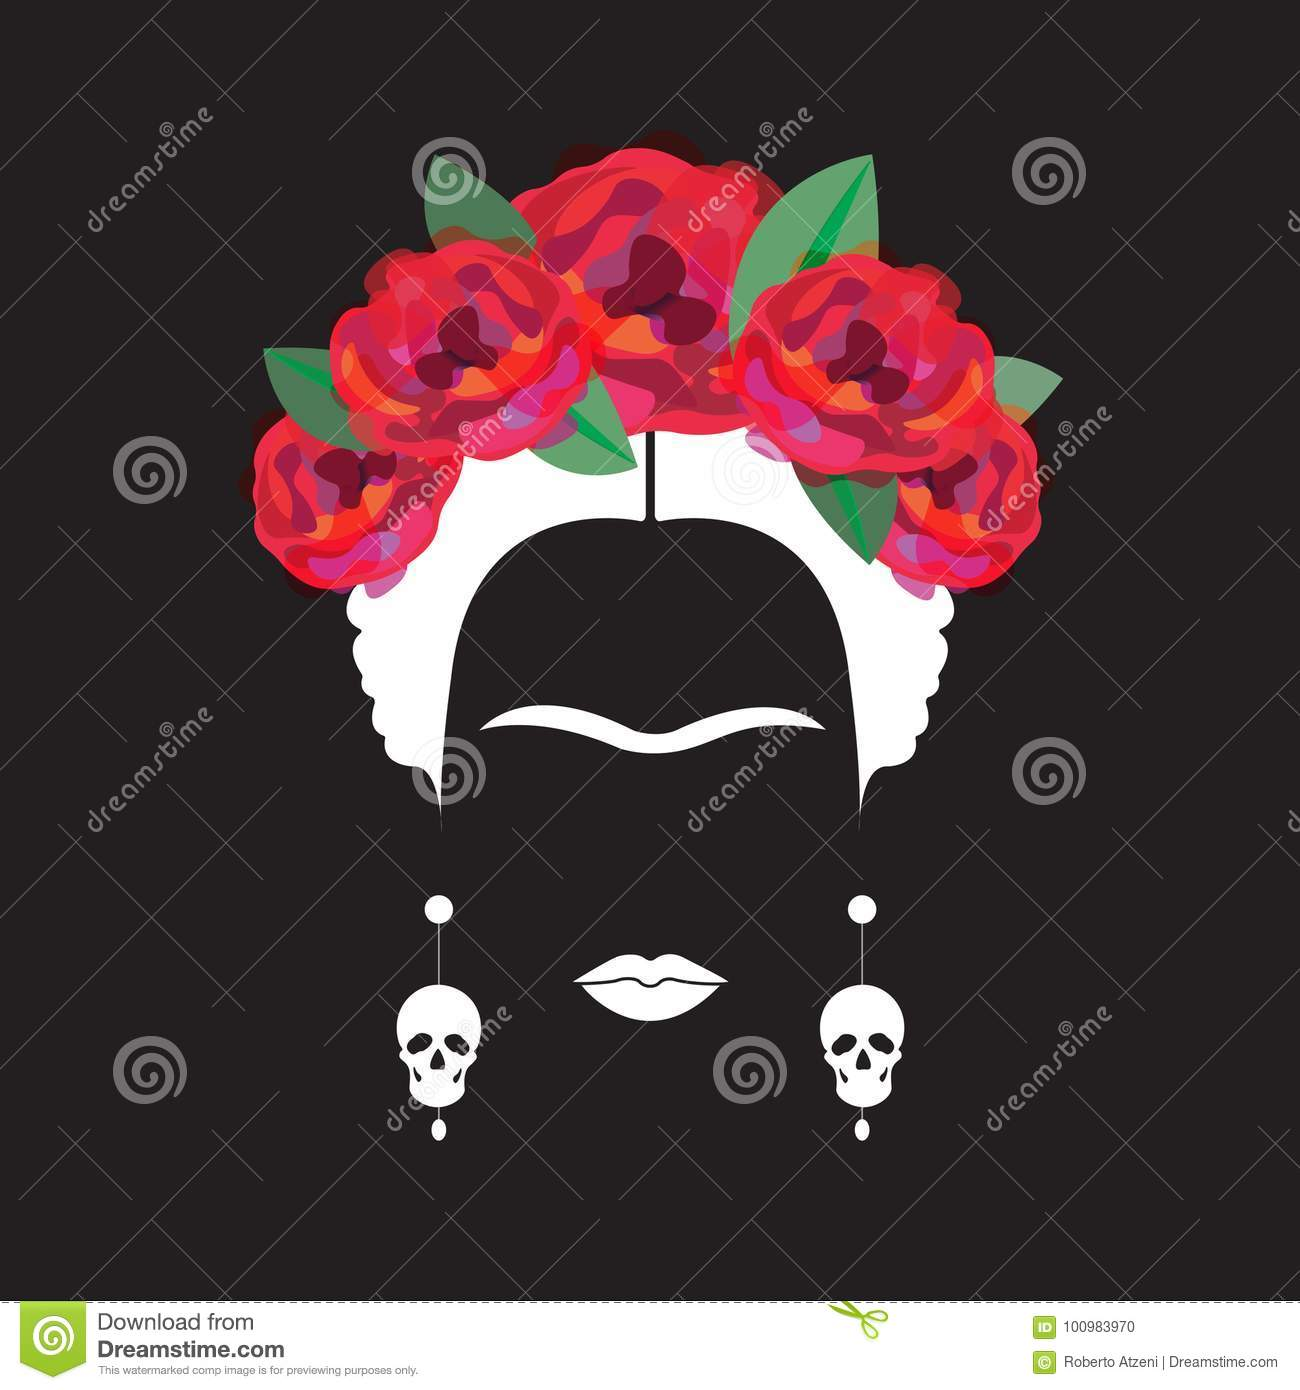 Portrait of Mexican or Spanish woman minimalist Frida Kahlo with earrings skulls and red flowers , black background